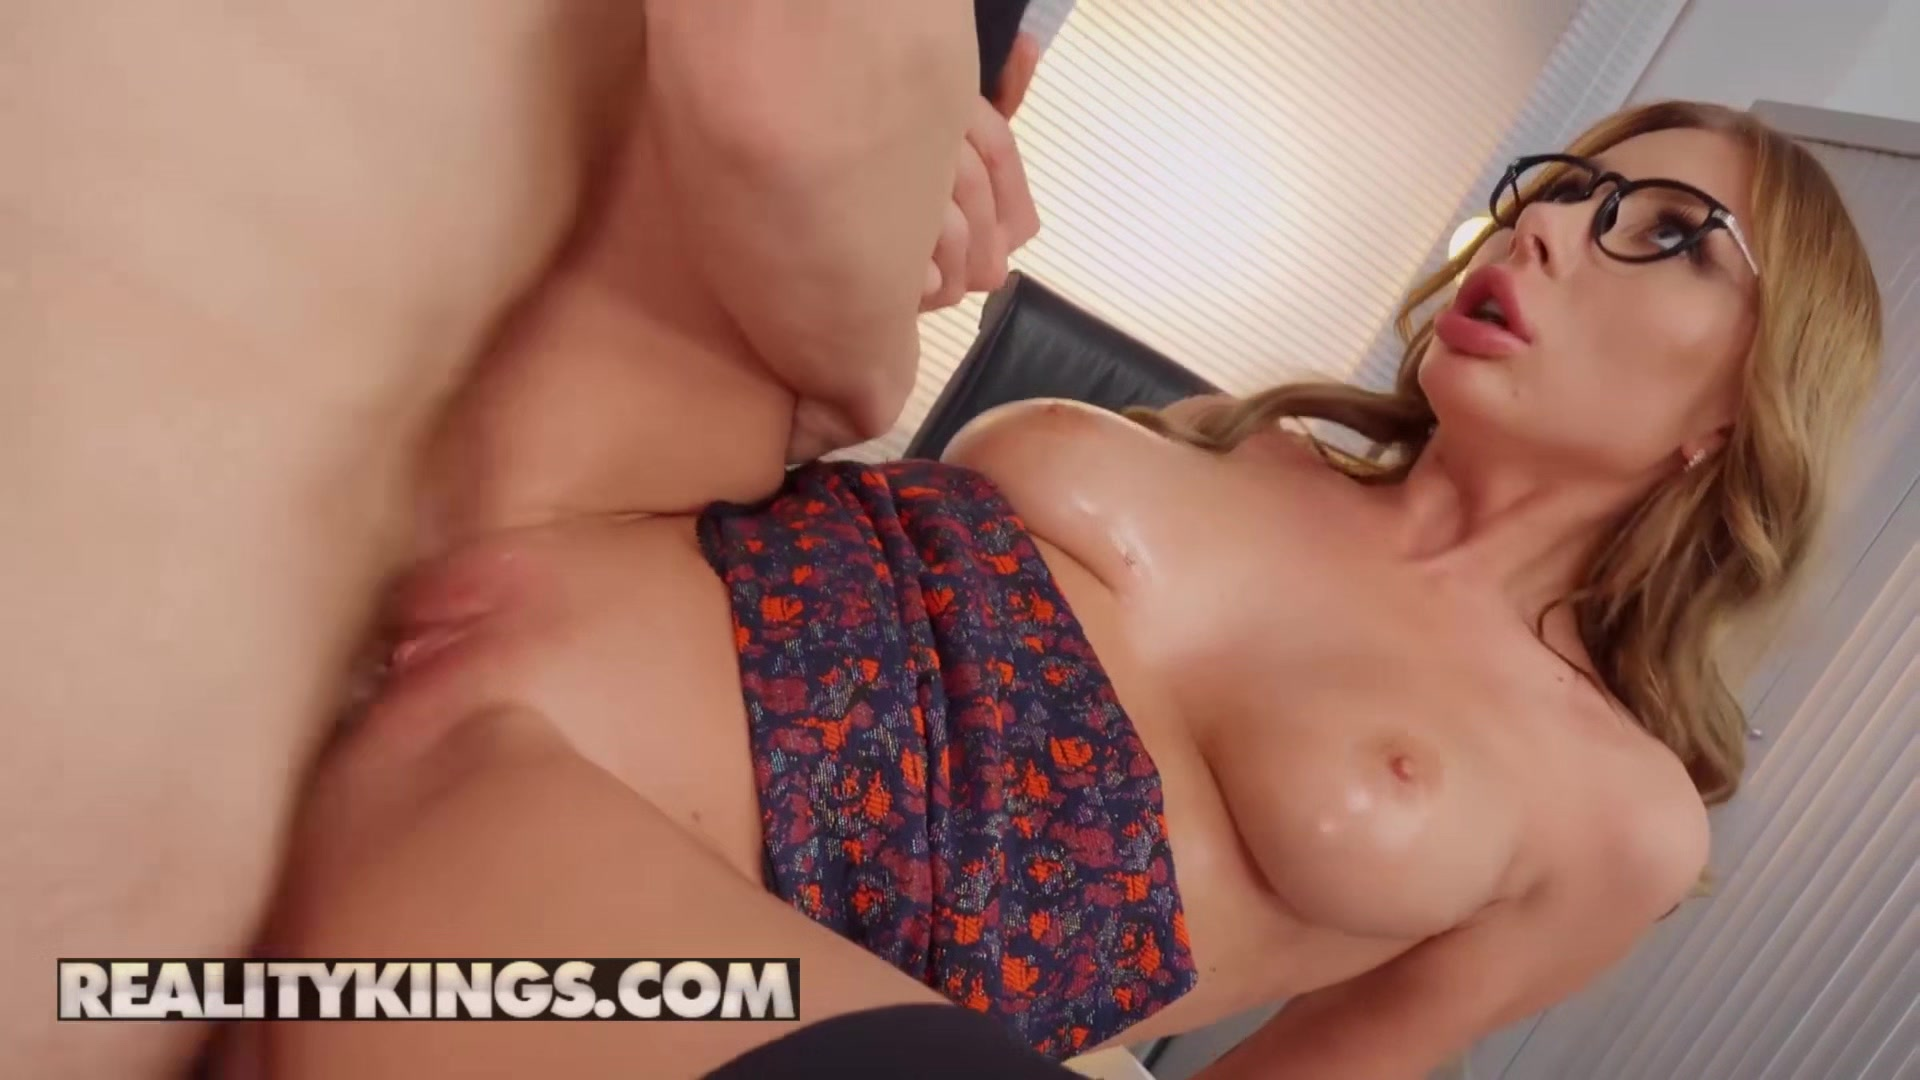 Reality Kings - Marilyn Crystal - Employee Of The Month